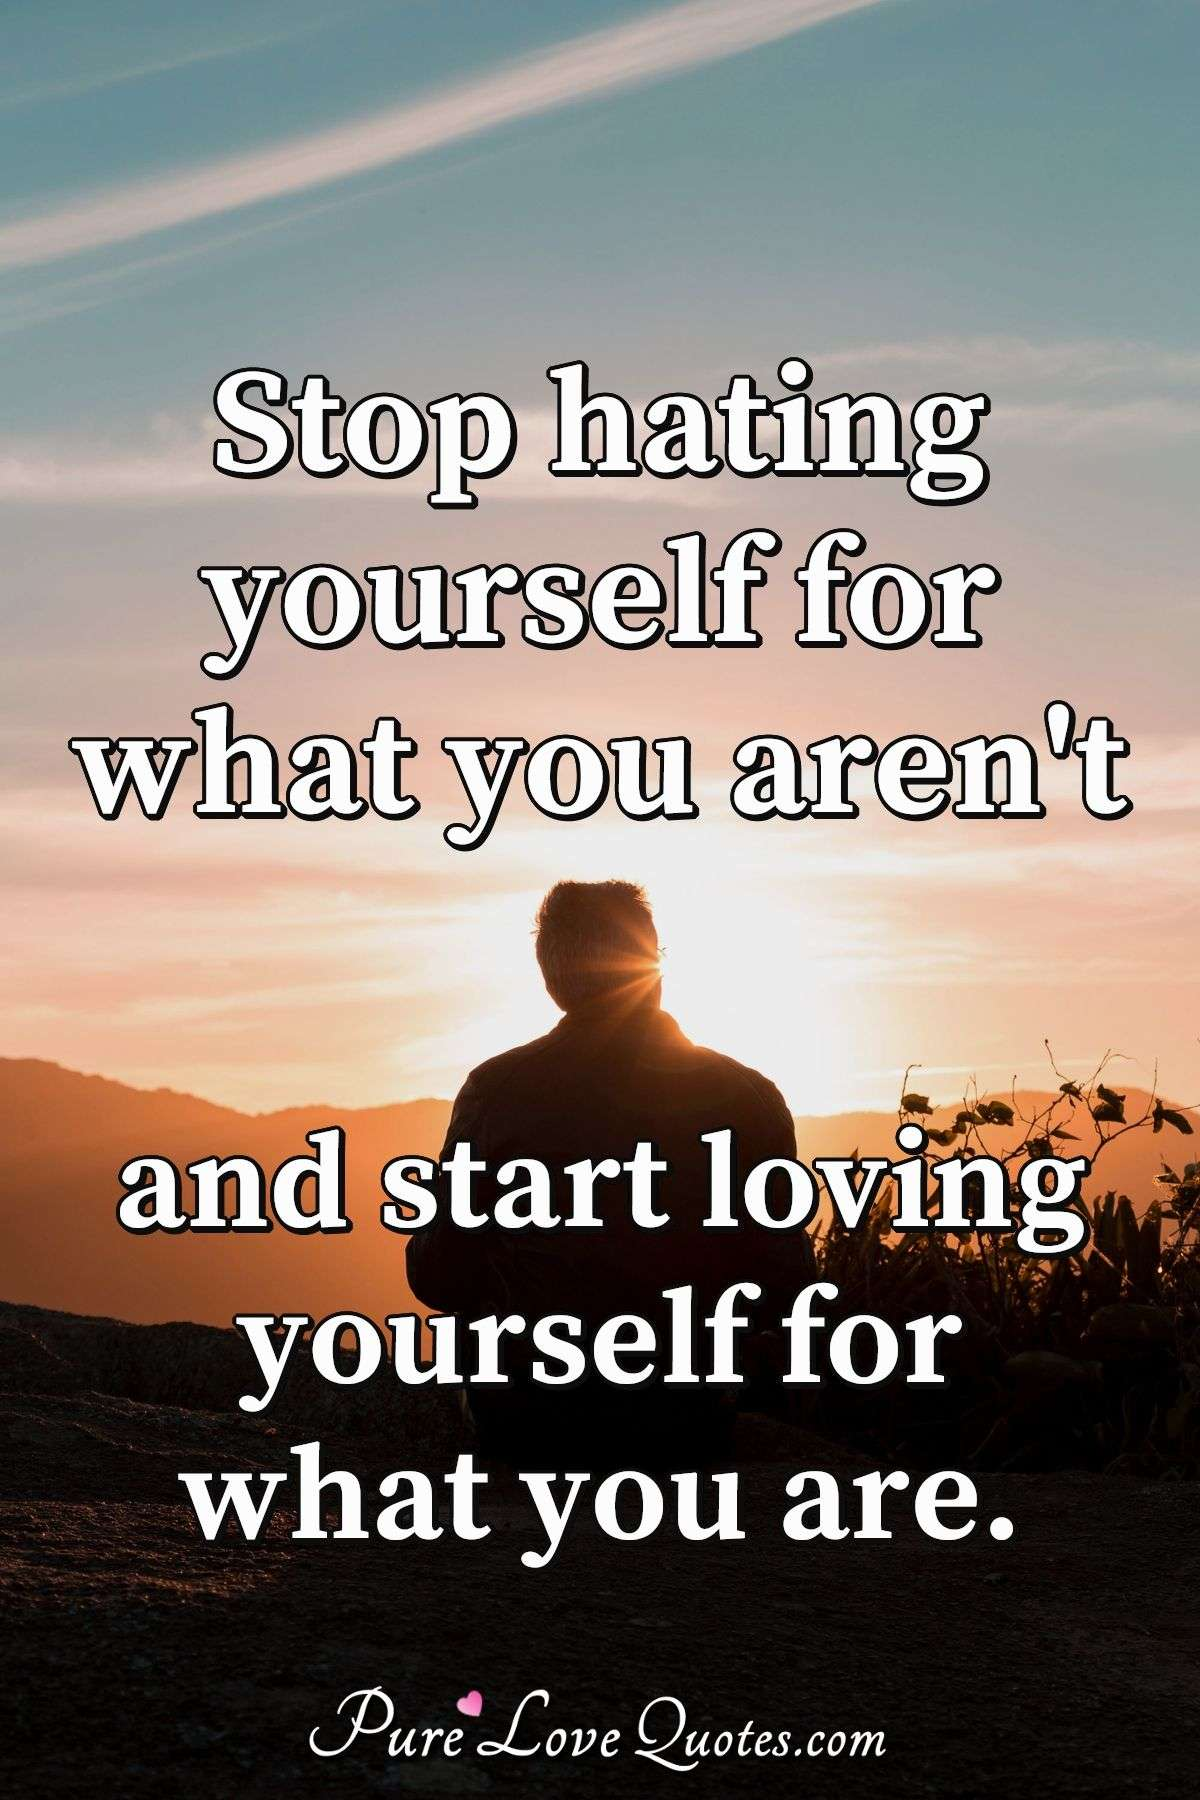 Stop hating yourself for what you aren't and start loving yourself for what you are. - Anonymous